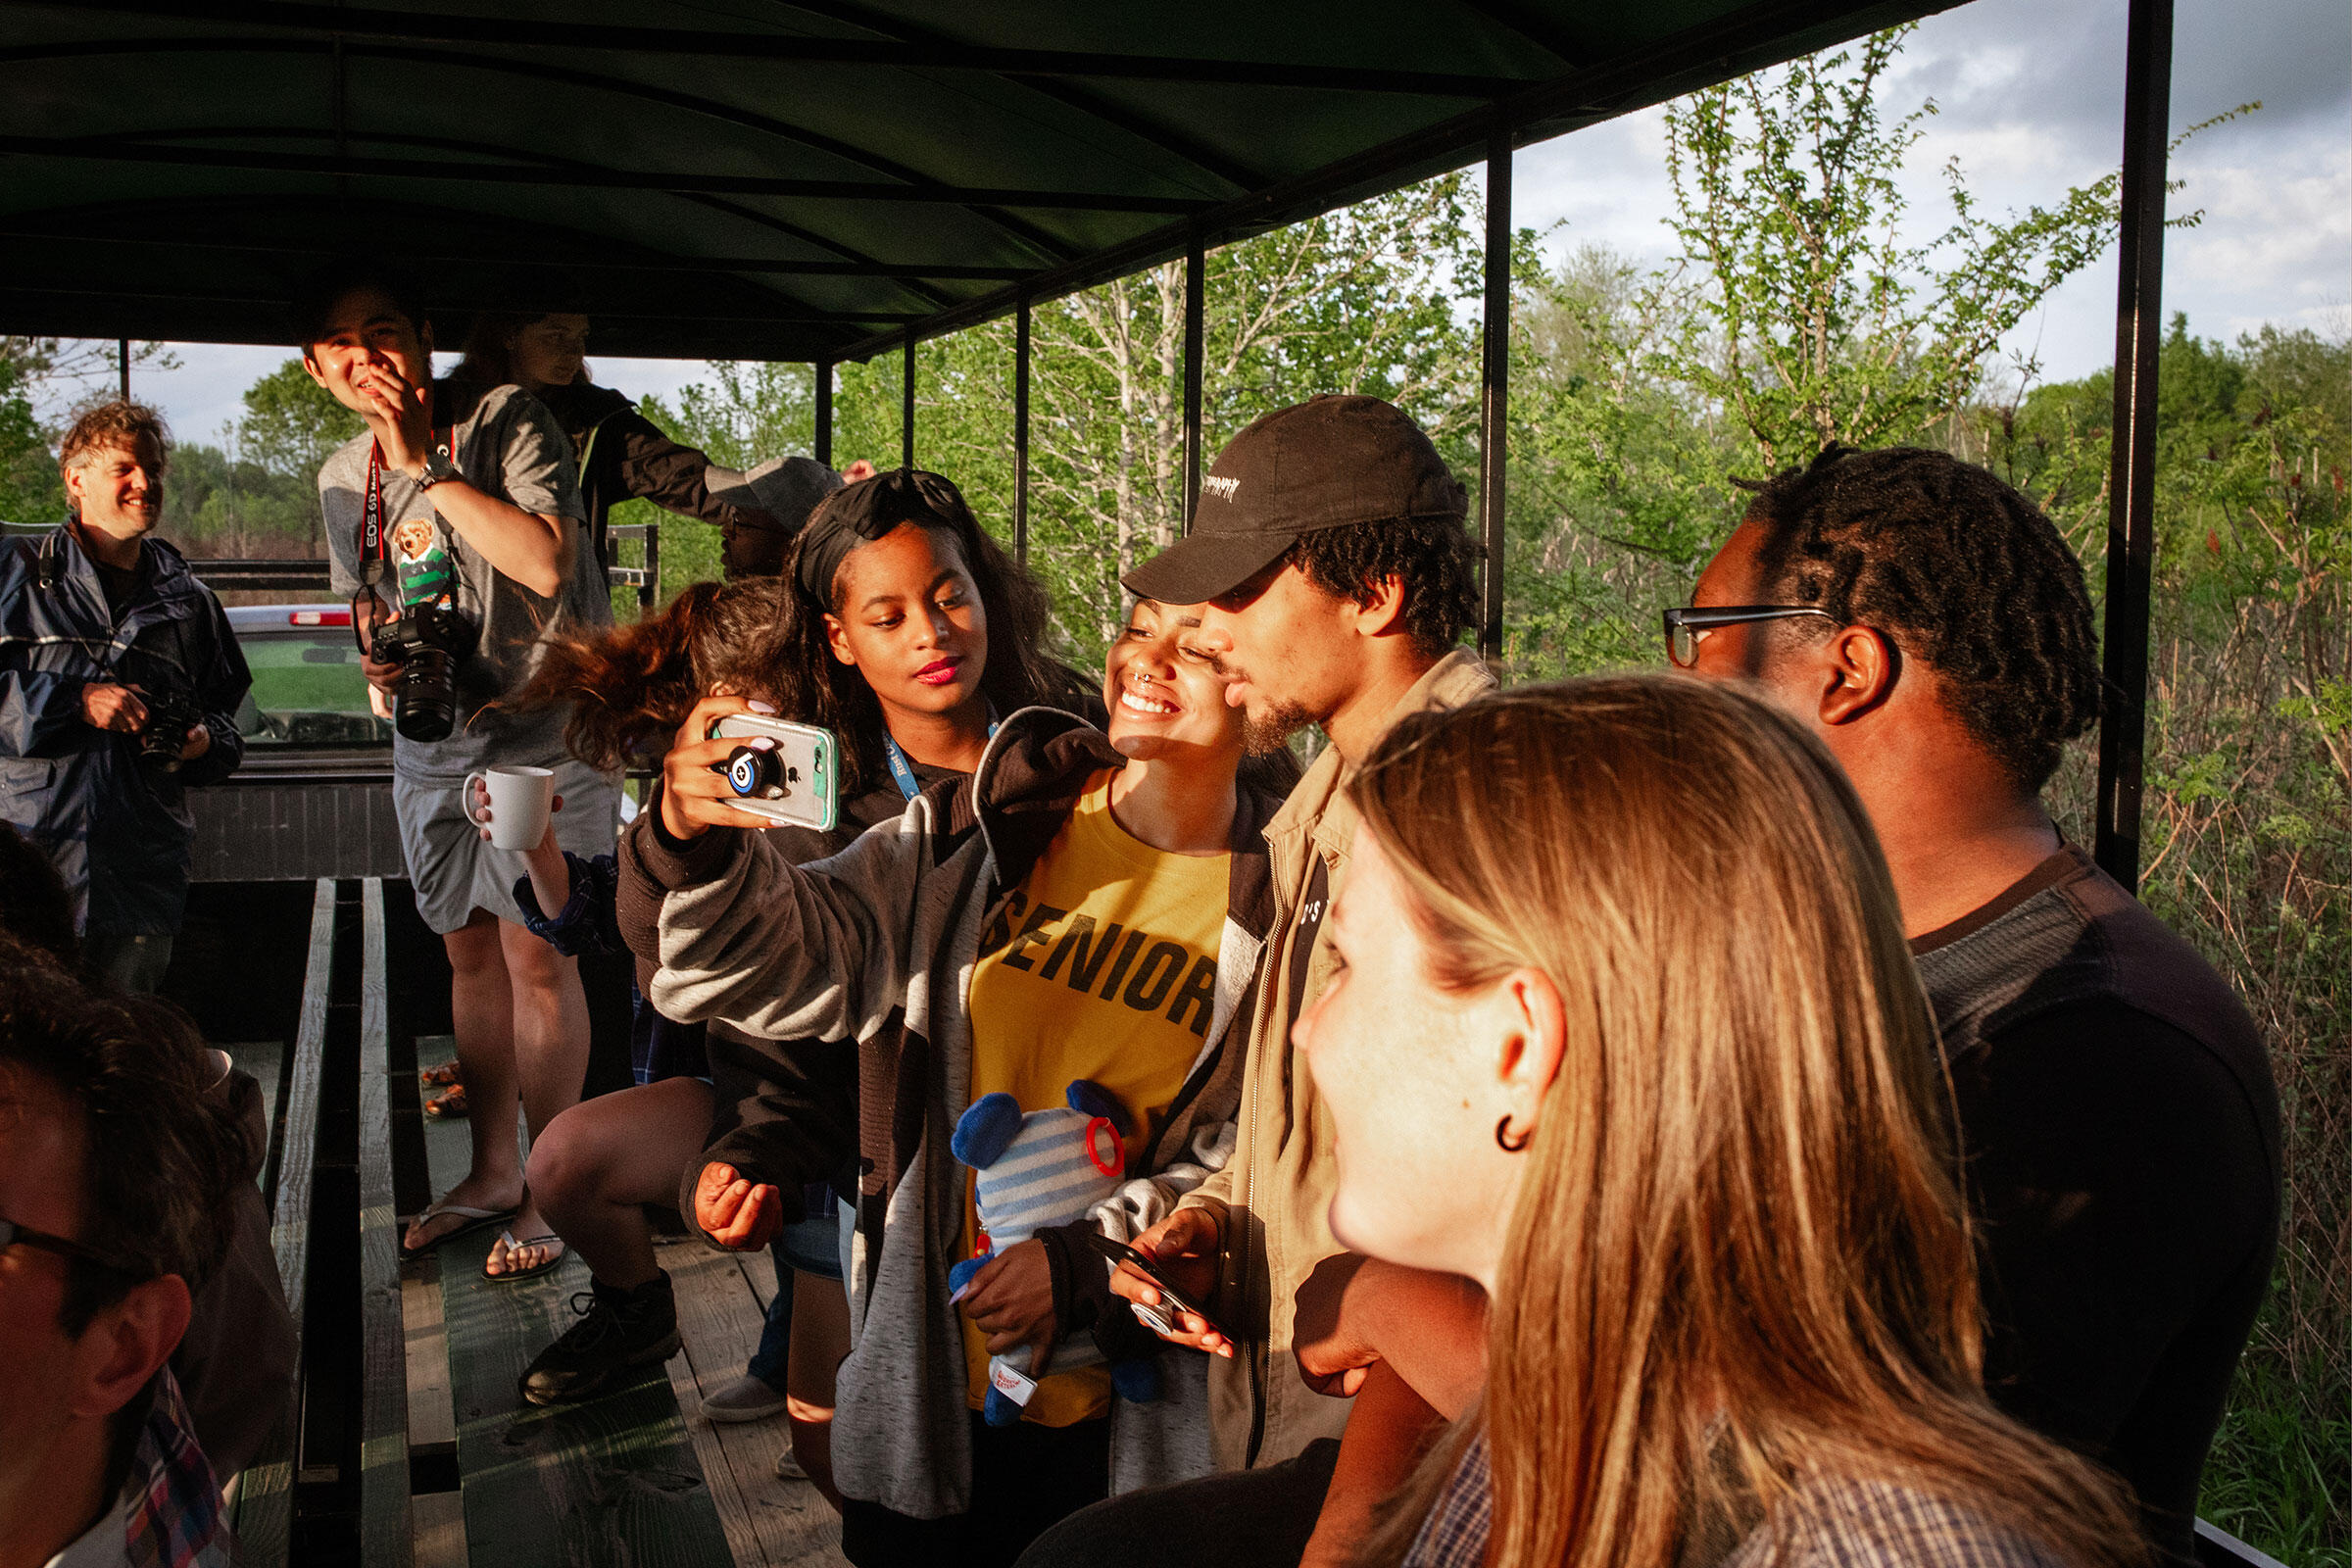 Students from Rust College and University of Mississippi take a moment for a selfie during a wagon ride through Strawberry Plains Audubon Center's early successional habitats. Mike Fernandez/Audubon